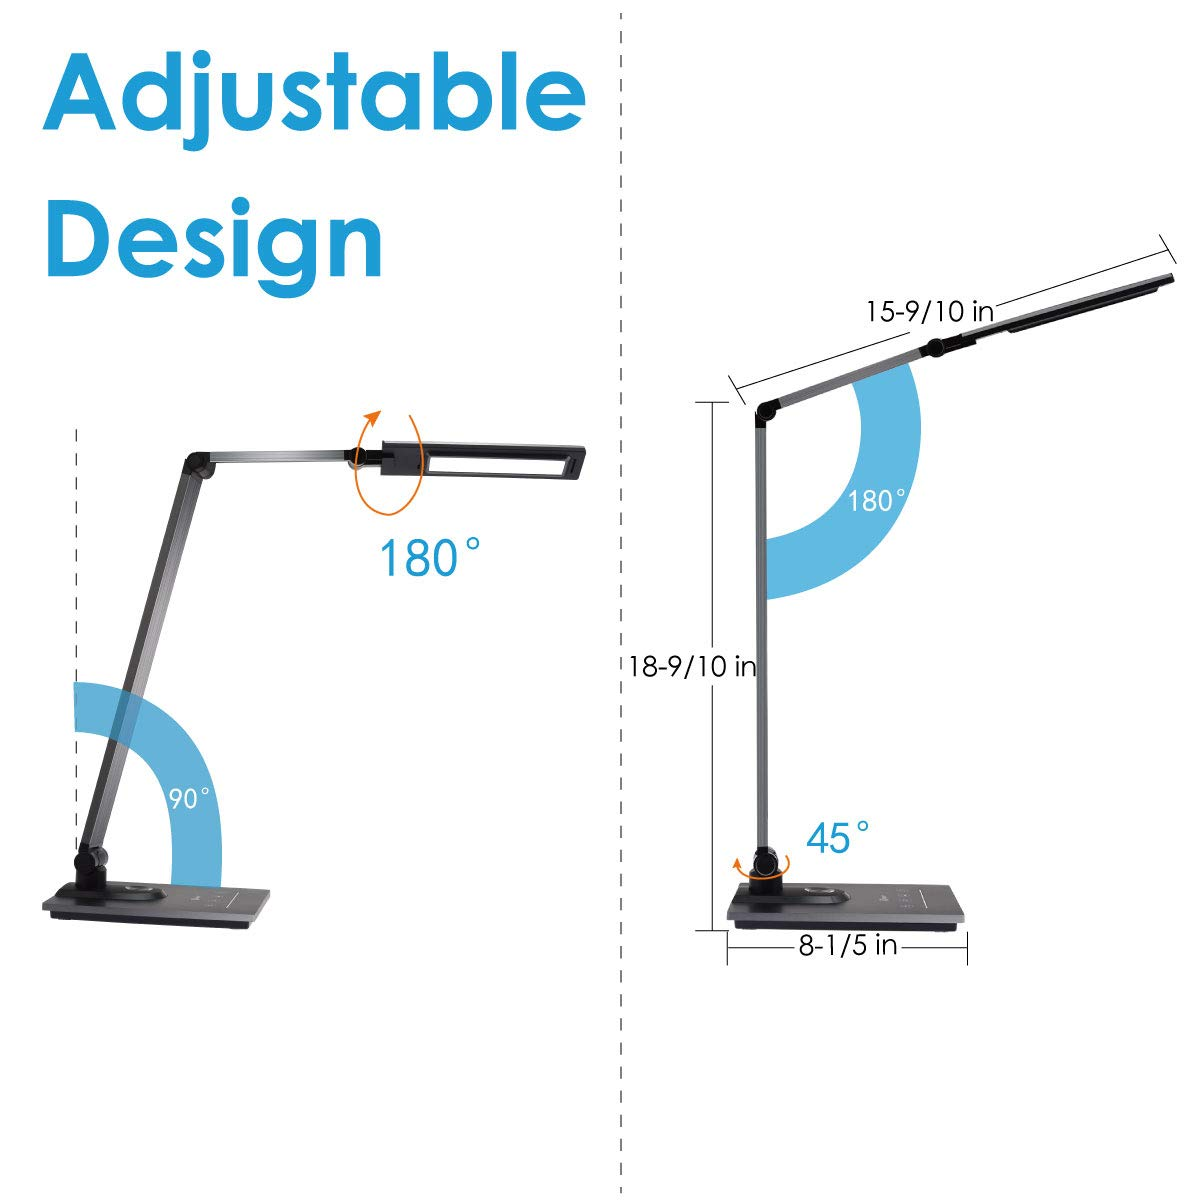 IMIGY Aluminum Alloy LED Desk Lamp with USB Charging Port, 9W Dimmable Office Lamp, Slide Touch Control with Stepless Adjustable Brightness and 3 Color Modes, Black by IMIGY (Image #6)